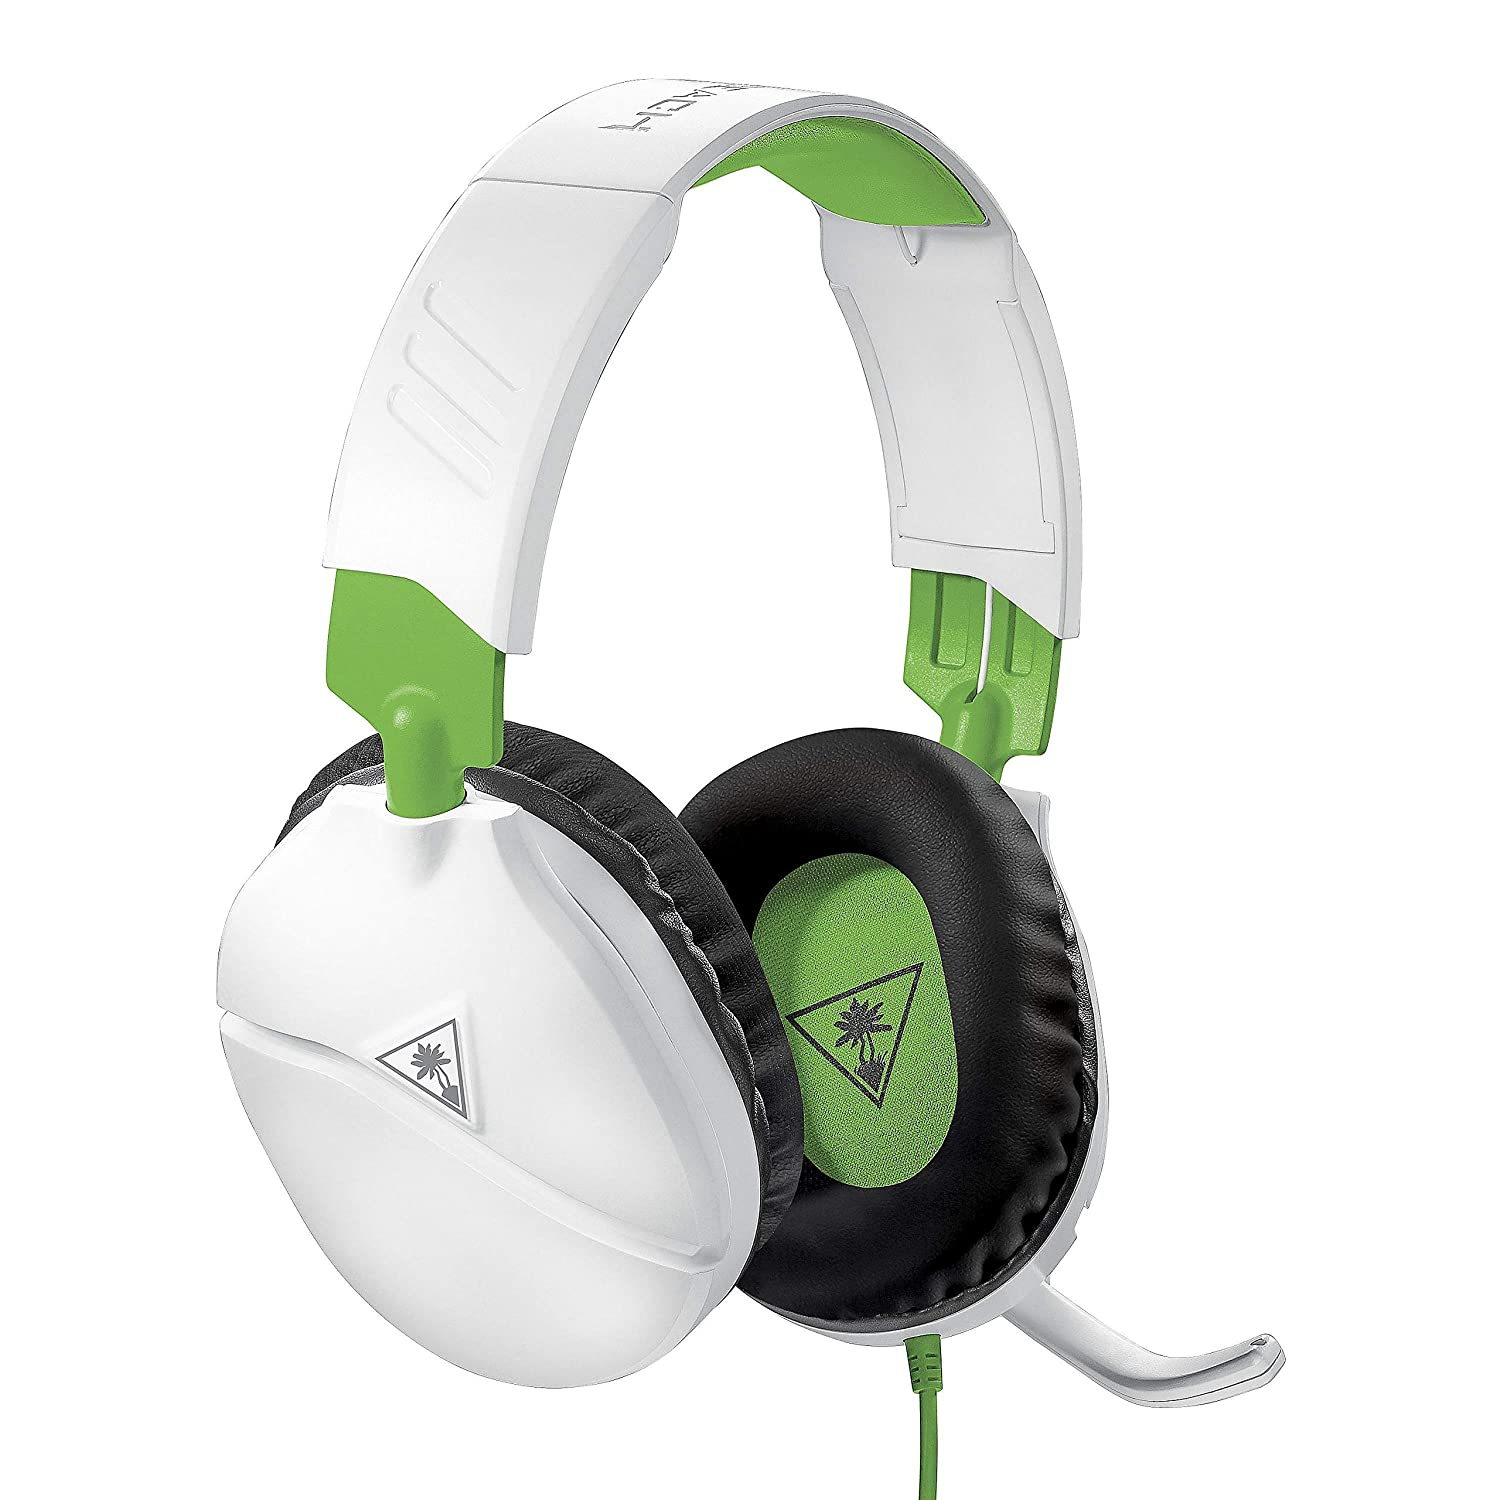 Classier: Buy Turtle Beach Turtle Beach Recon 70 White Gaming Headset for PlayStation 4 Pro, PlayStation 4, Xbox One, Nintendo Switch, PC, and Mobile